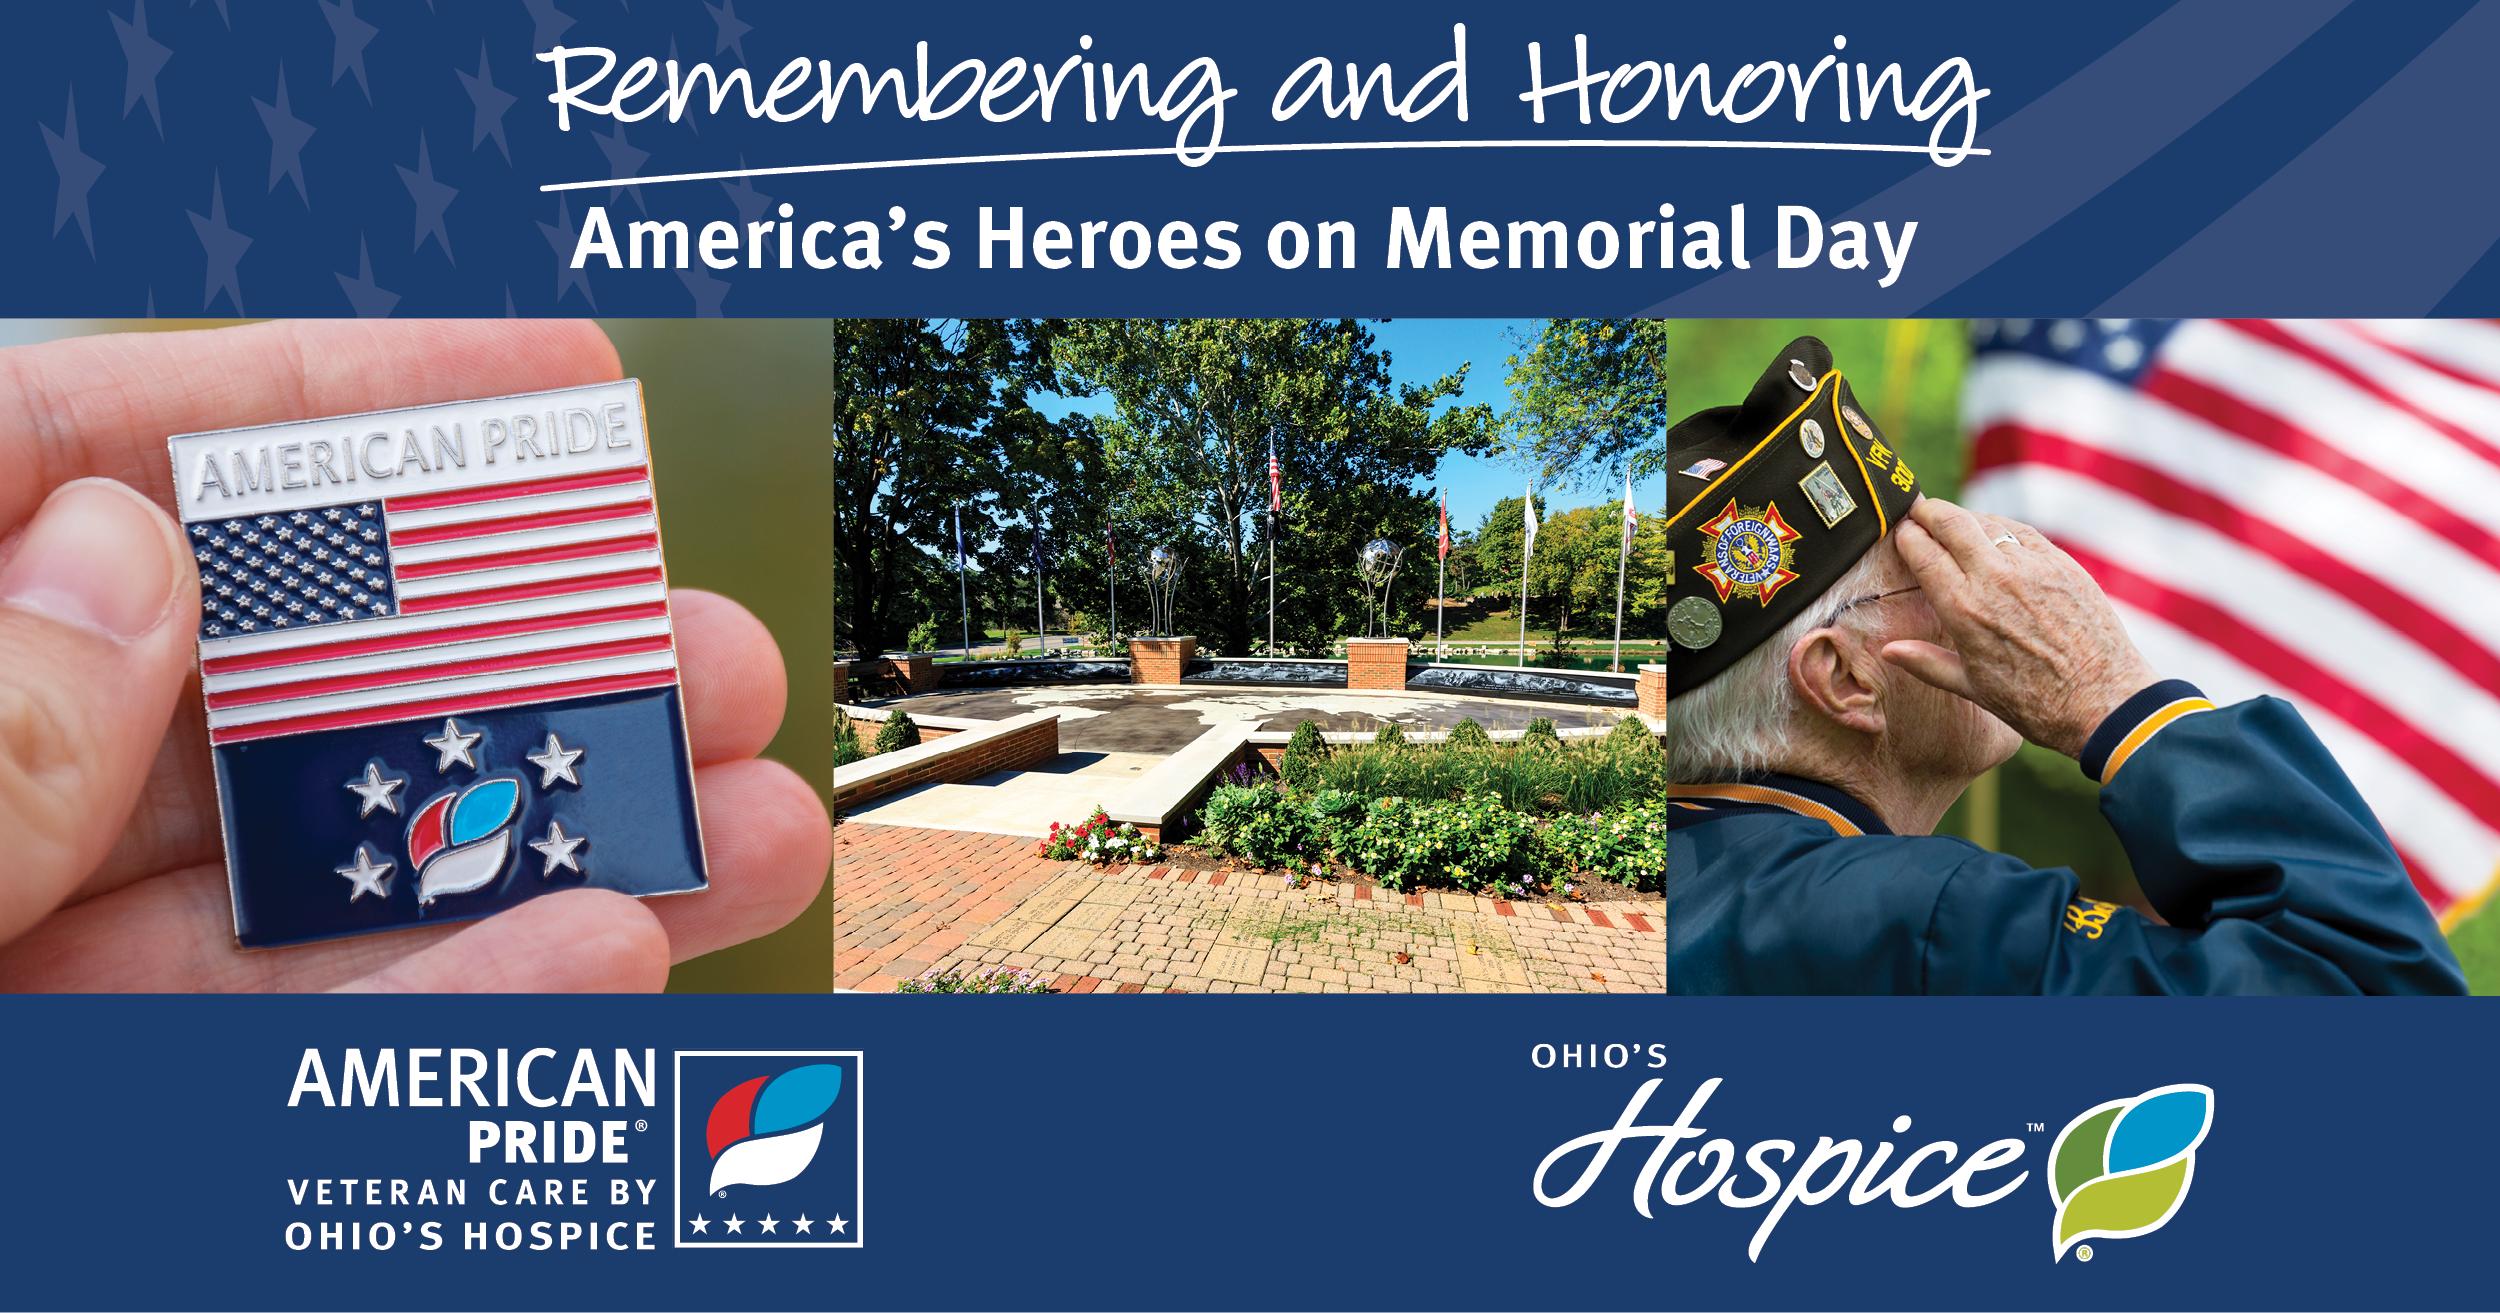 Remembering And Honoring America's Heroes On Memorial Day